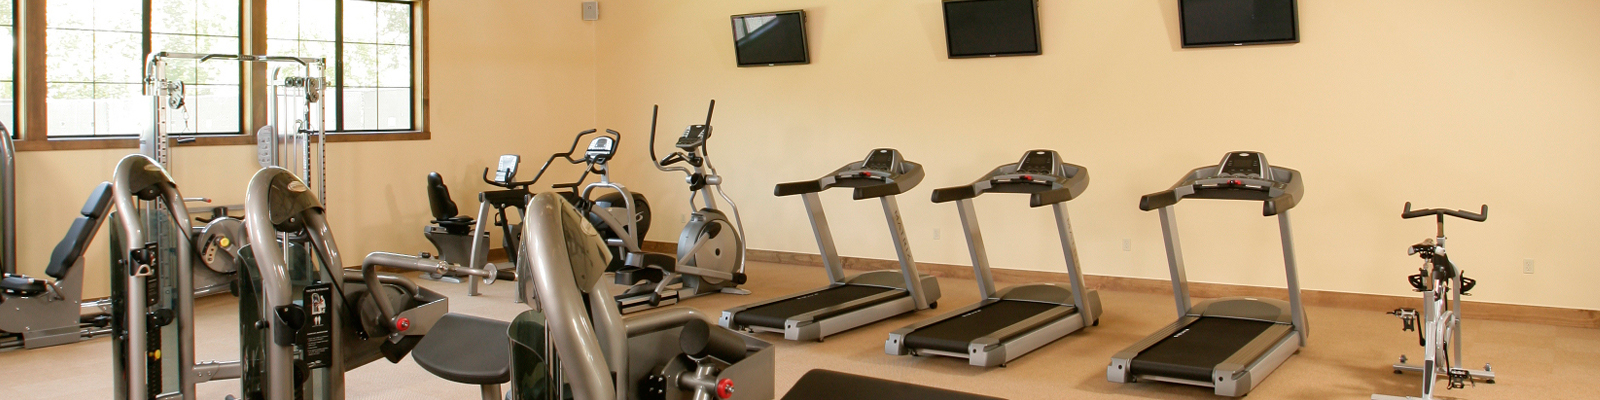 Fitness center equipment at Alisal Guest Ranch & Resort